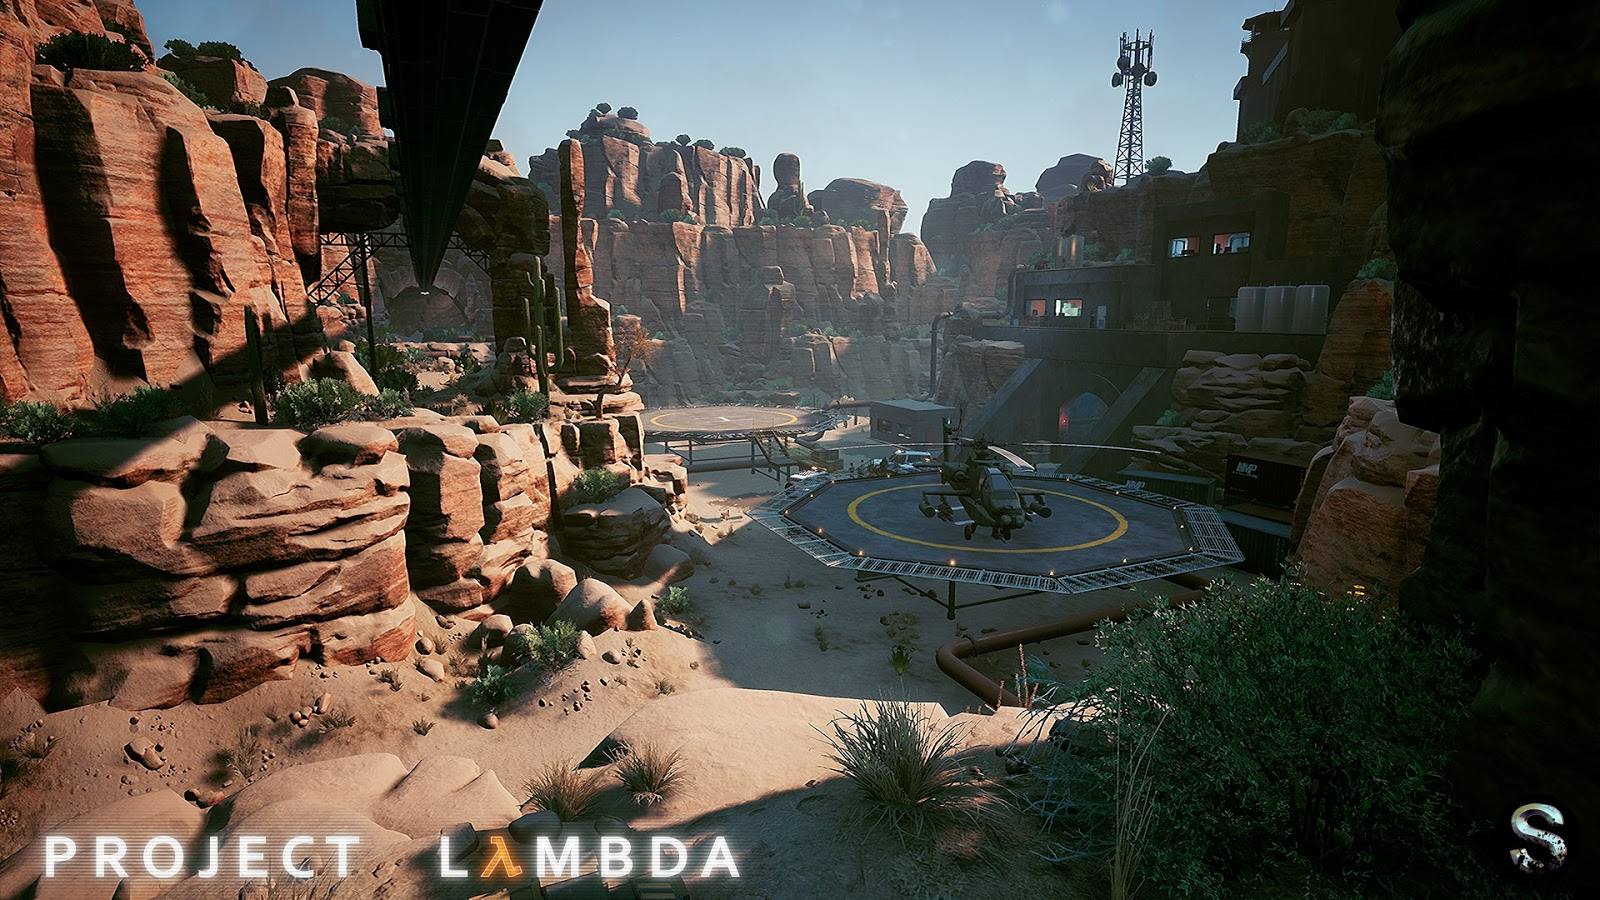 PROJECT LAMBDA: Half-Life is remade in Unreal Engine 4, and you can